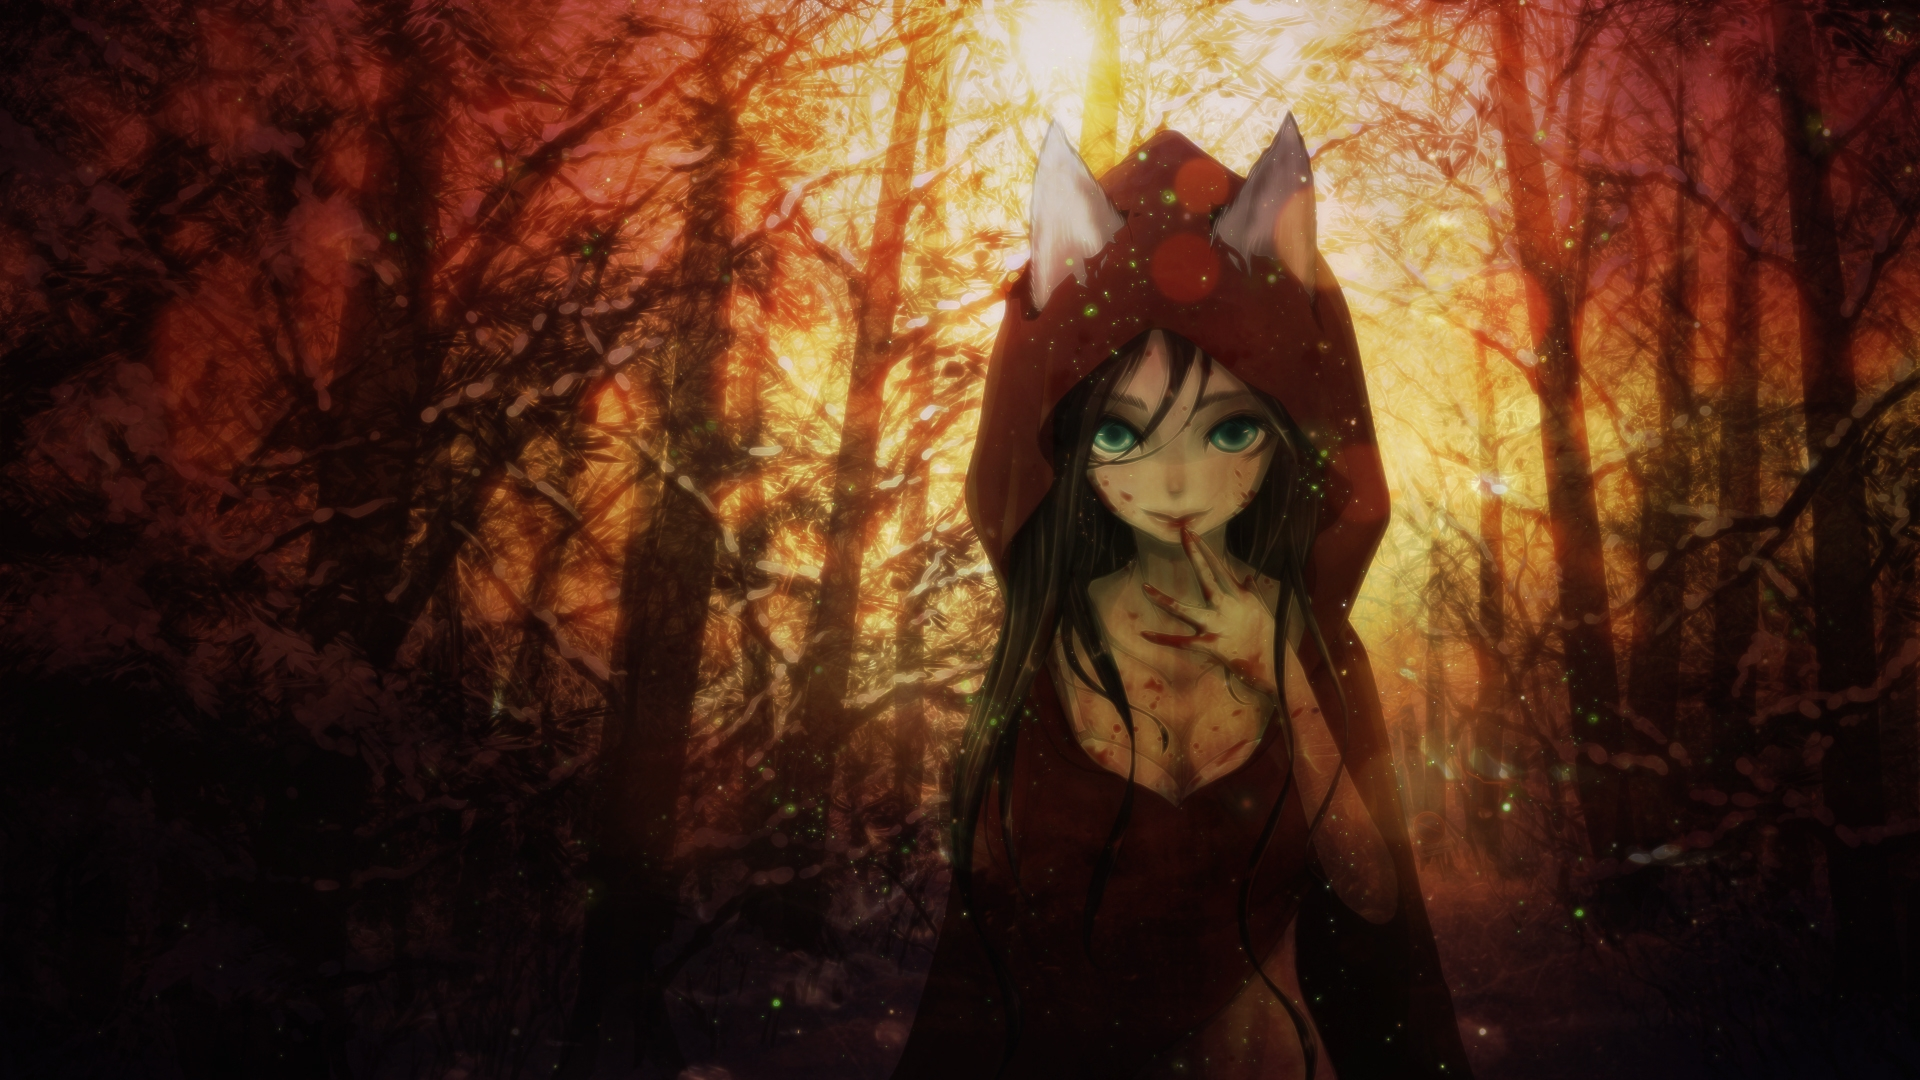 Wallpaper Hd Cute For Men Download 1920x1080 Anime Girl Fantasy Animal Ears